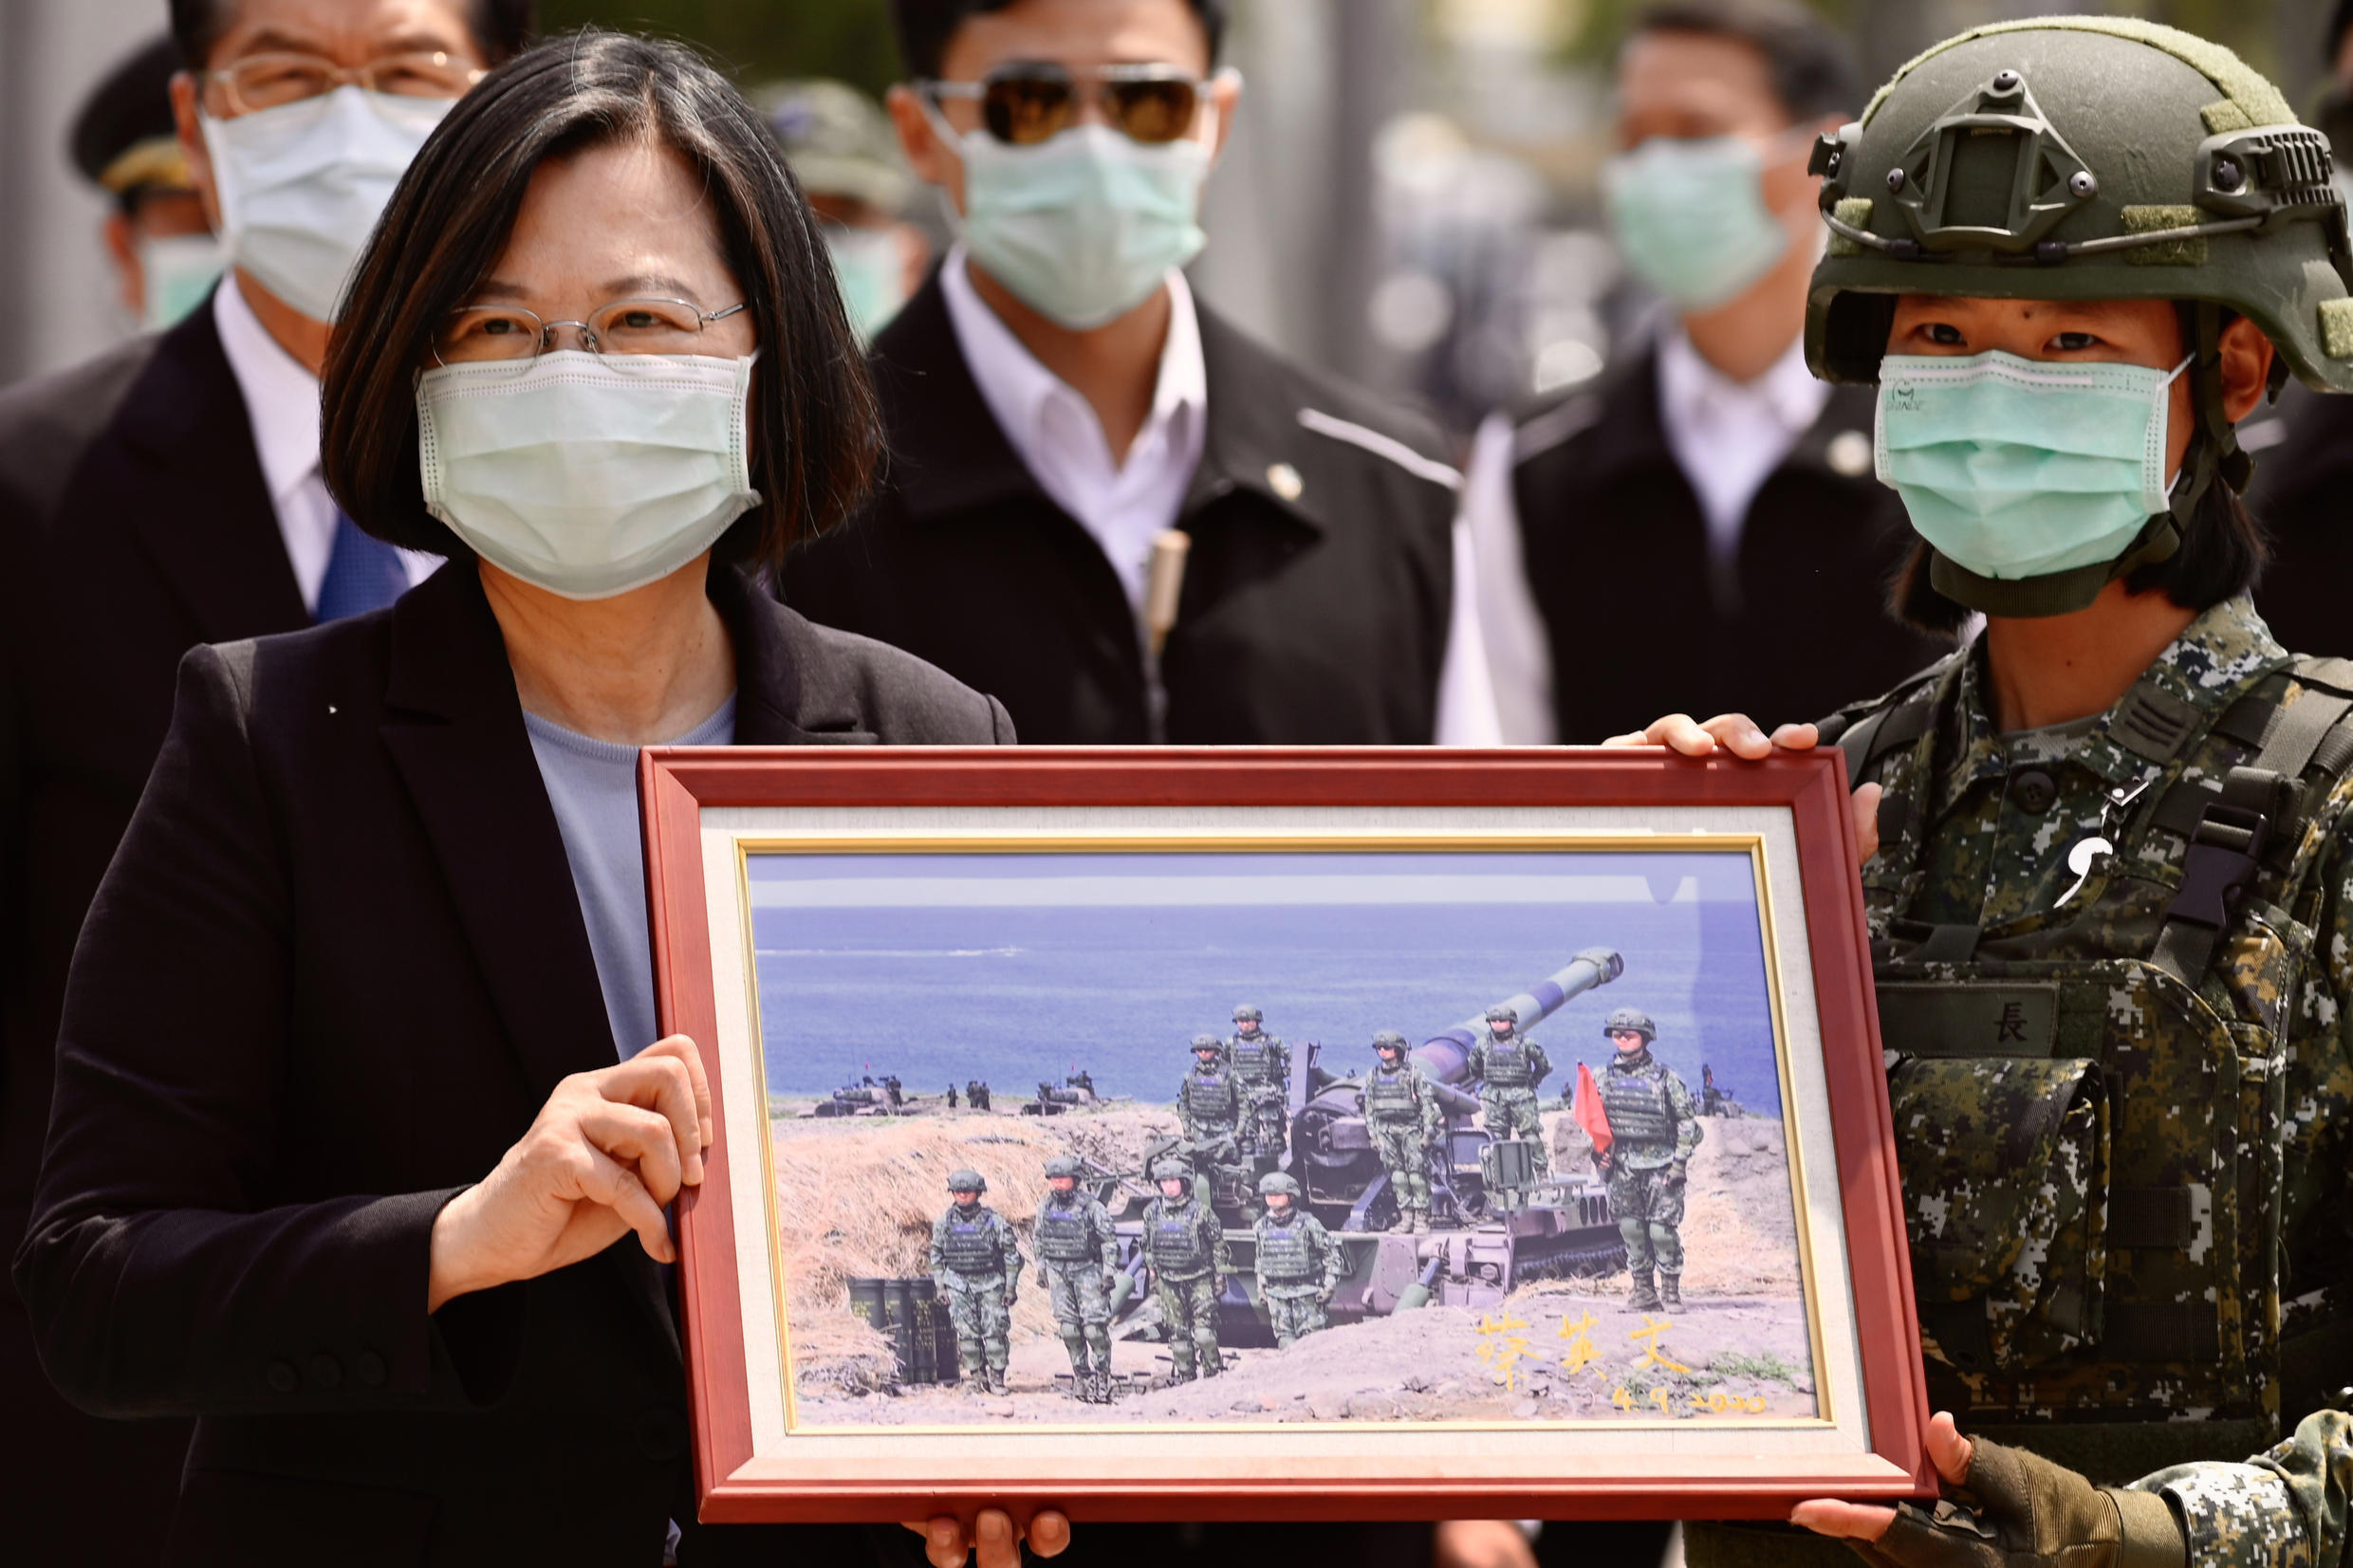 Taiwan President Tsai Ing-wen receives a framed photograph from a masked soldier amid the COVID-19 coronavirus pandemic during a visit to a military base in Tainan on April 9, 2020